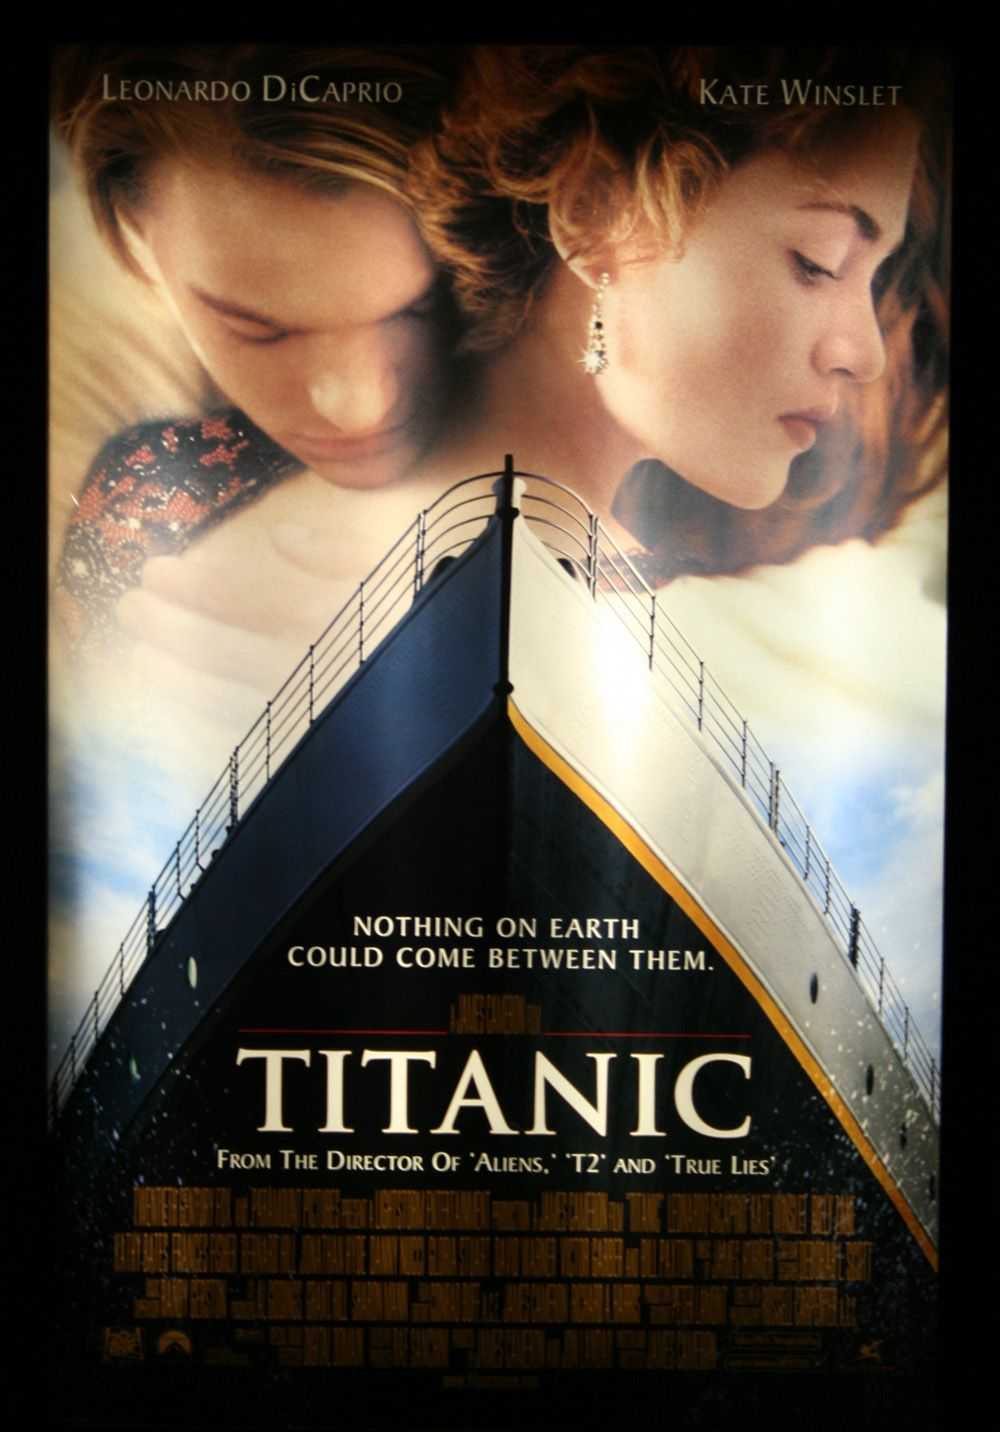 Titanic movie poster essay research paper topics on abortion